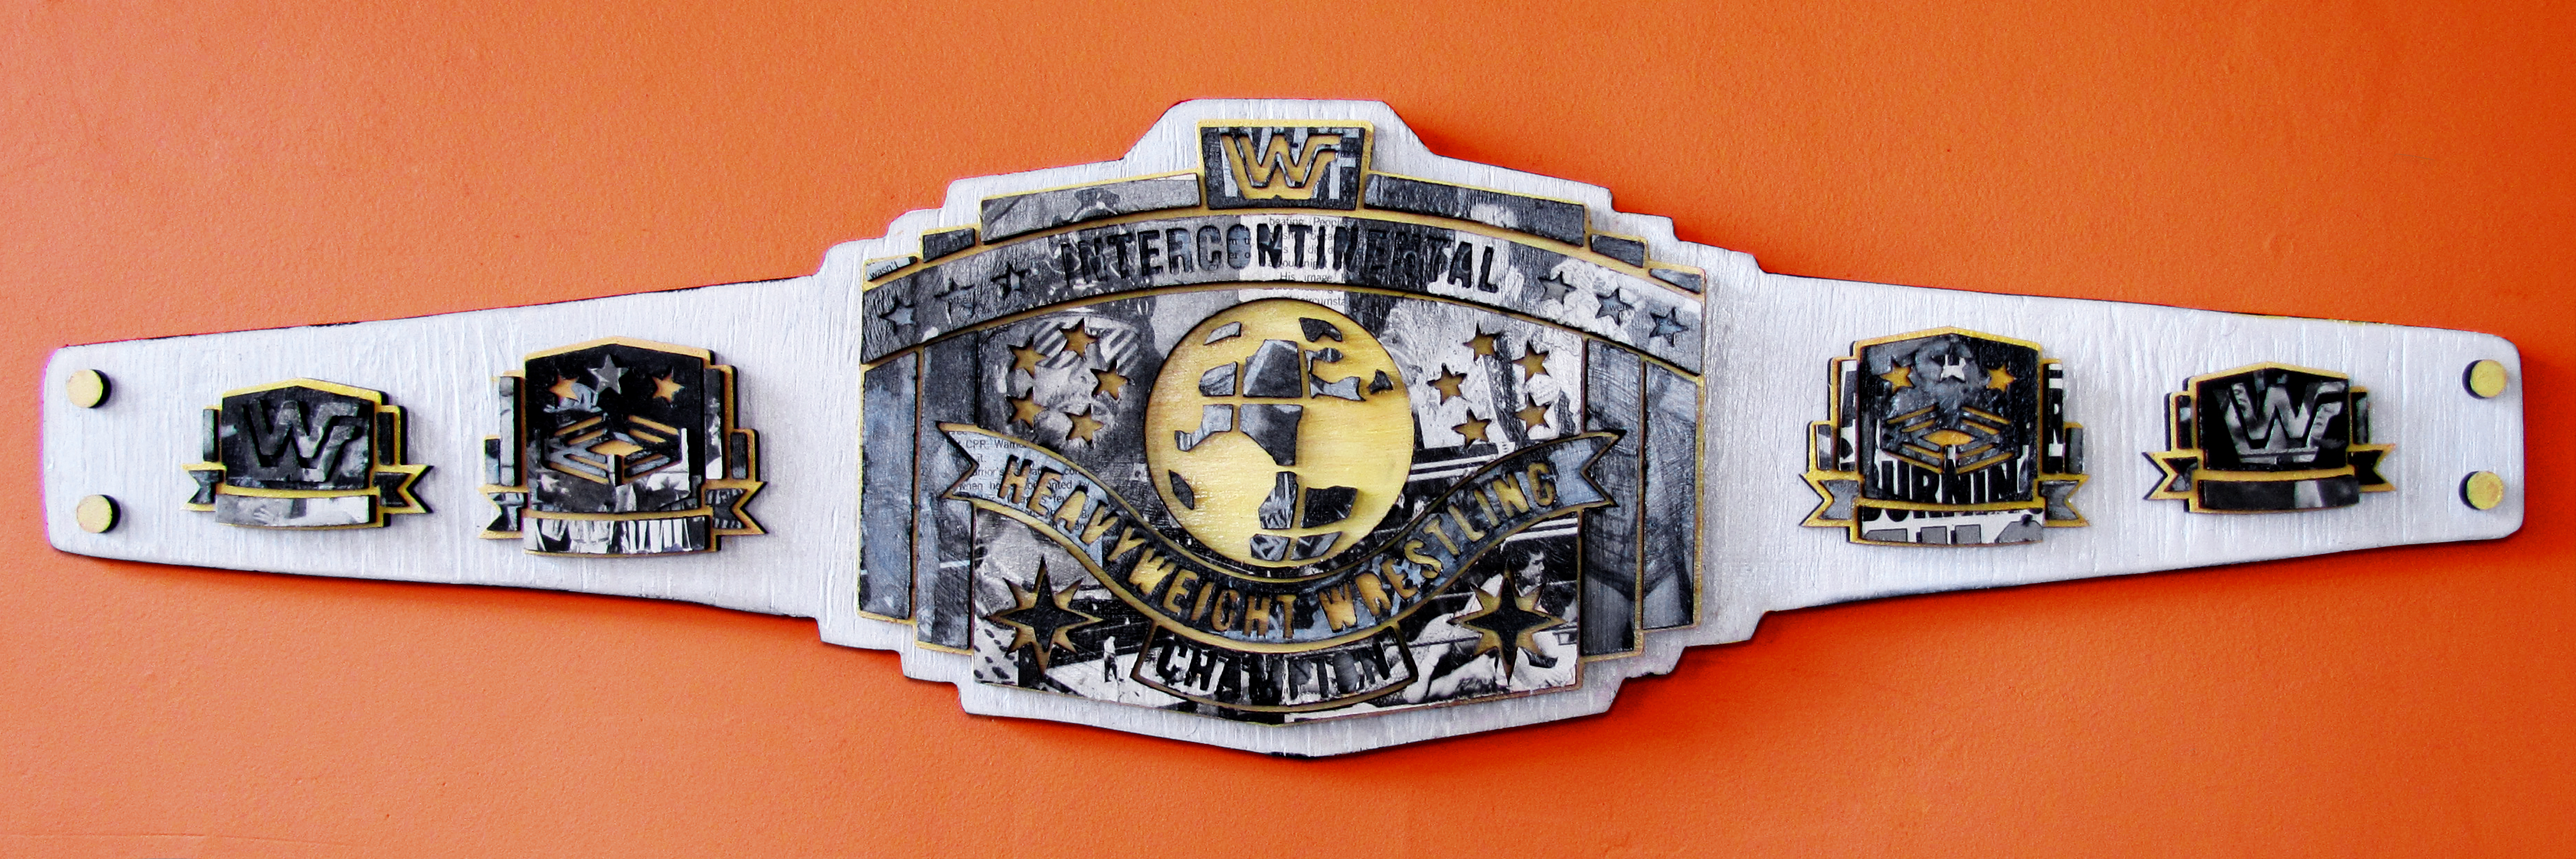 Intercontinental Wrestling Champion John Paterson Illustration Design Toronto